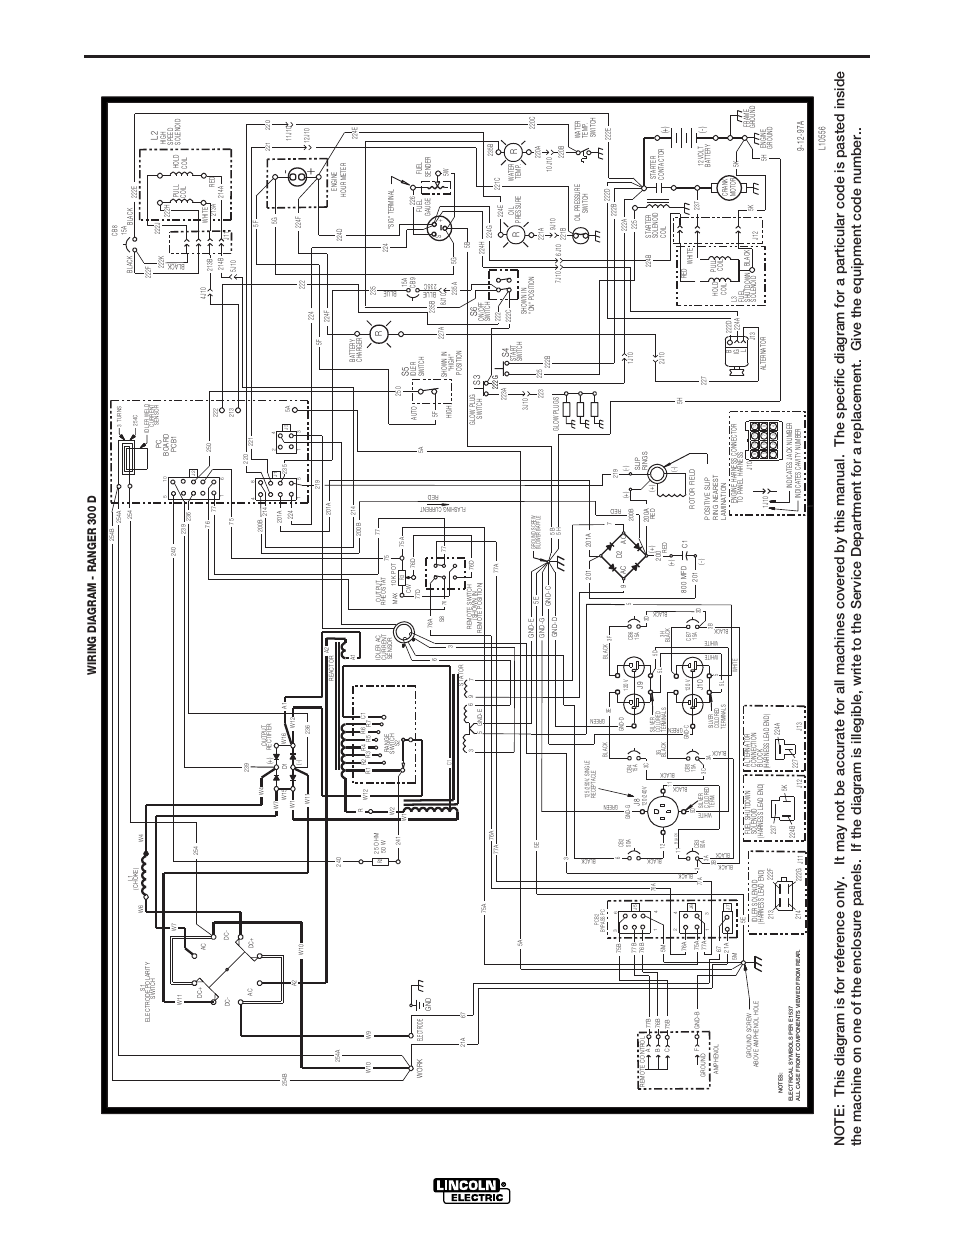 Lincoln Ranger 9 Wiring Diagram 2000 Navigator Engine Page